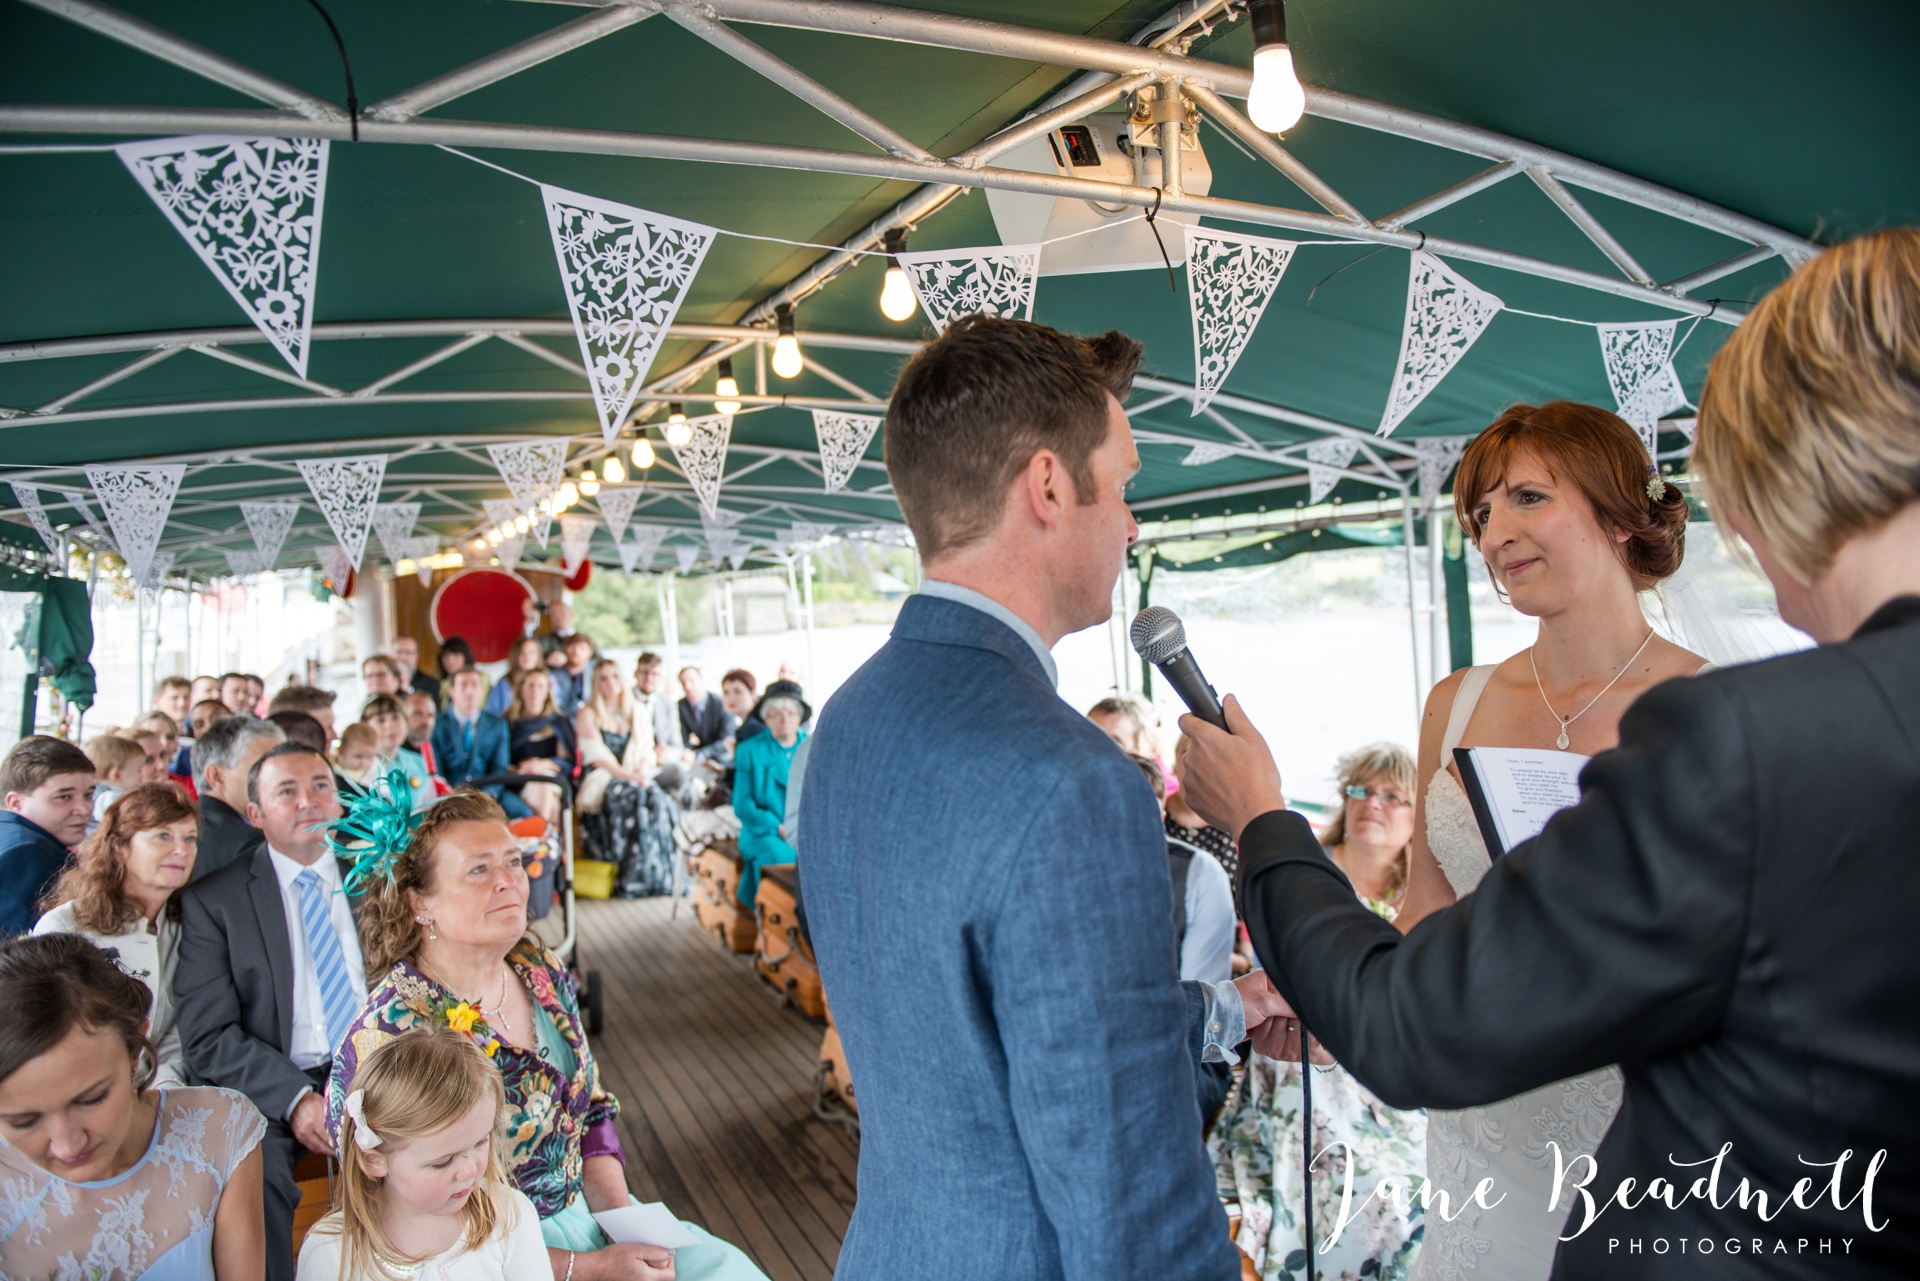 Jane Beadnell fine art wedding photographer Lake Ullswater Lake District_0013